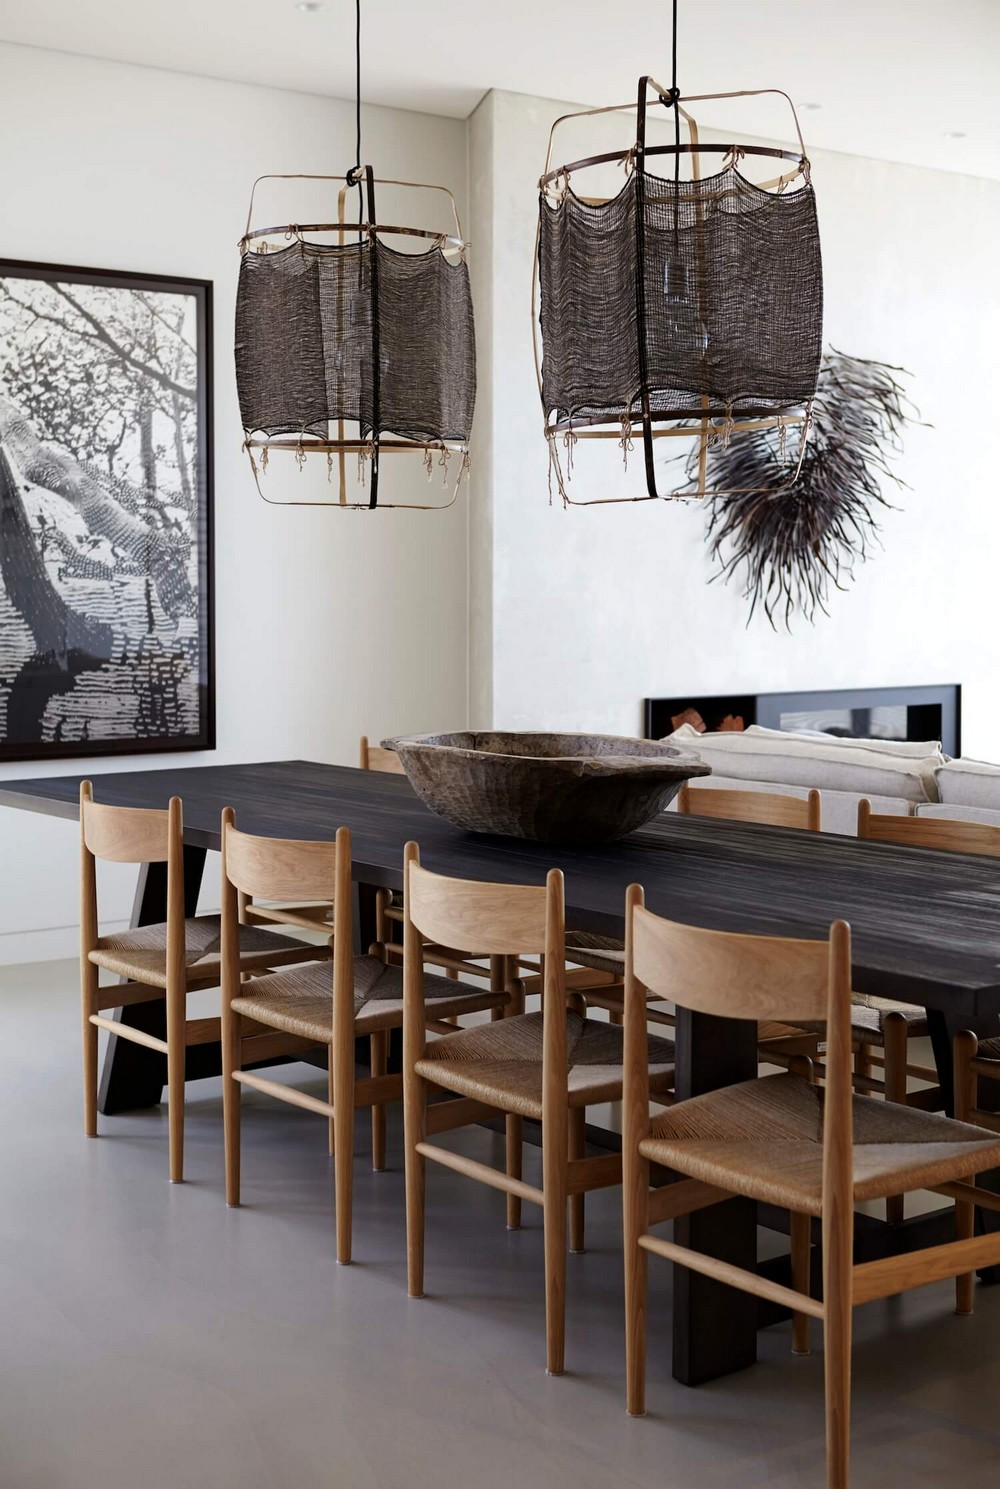 Hare + Klein: Contemporary Dining Rooms From Australia hare + klein Hare + Klein: Contemporary Dining Rooms From Australia 1 Est Living